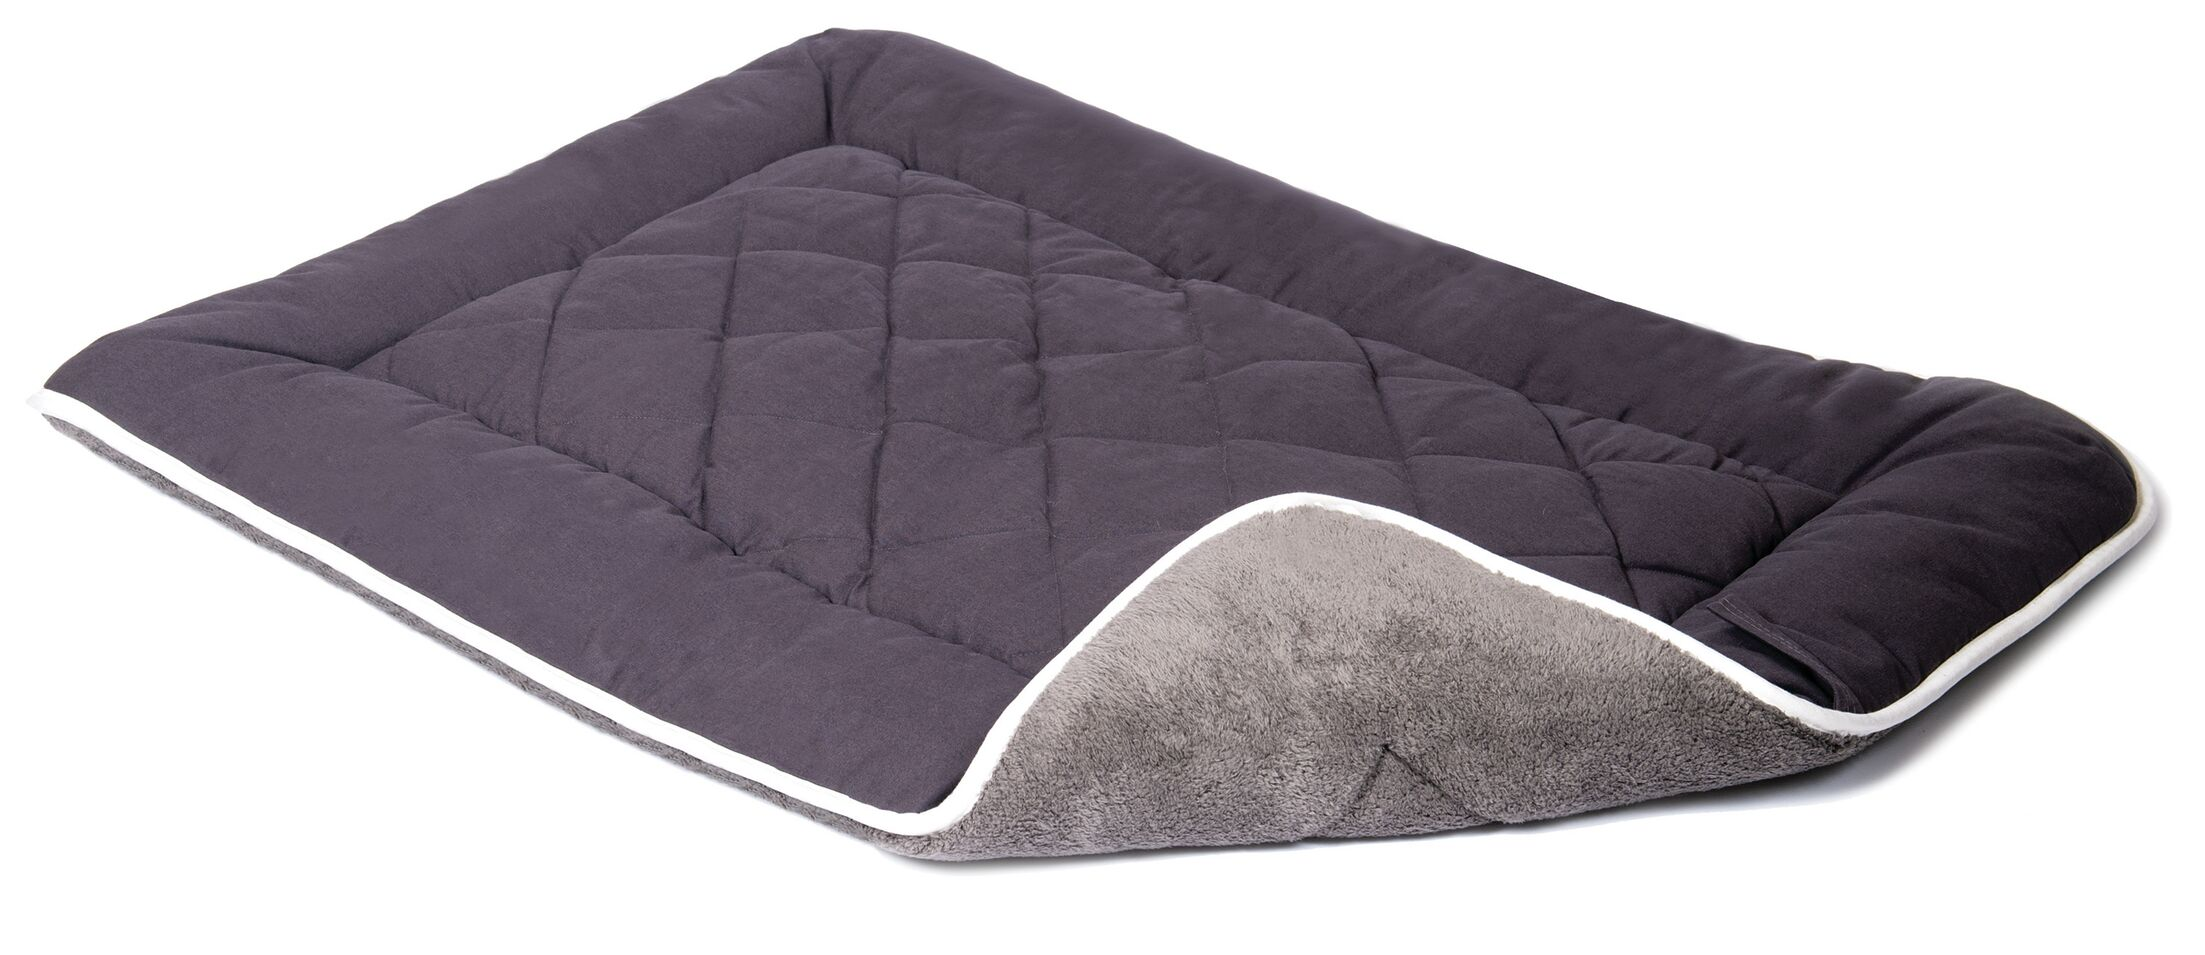 Anastasia Sleeper Dog Mat Color: Pebble Gray, Size: Small (24